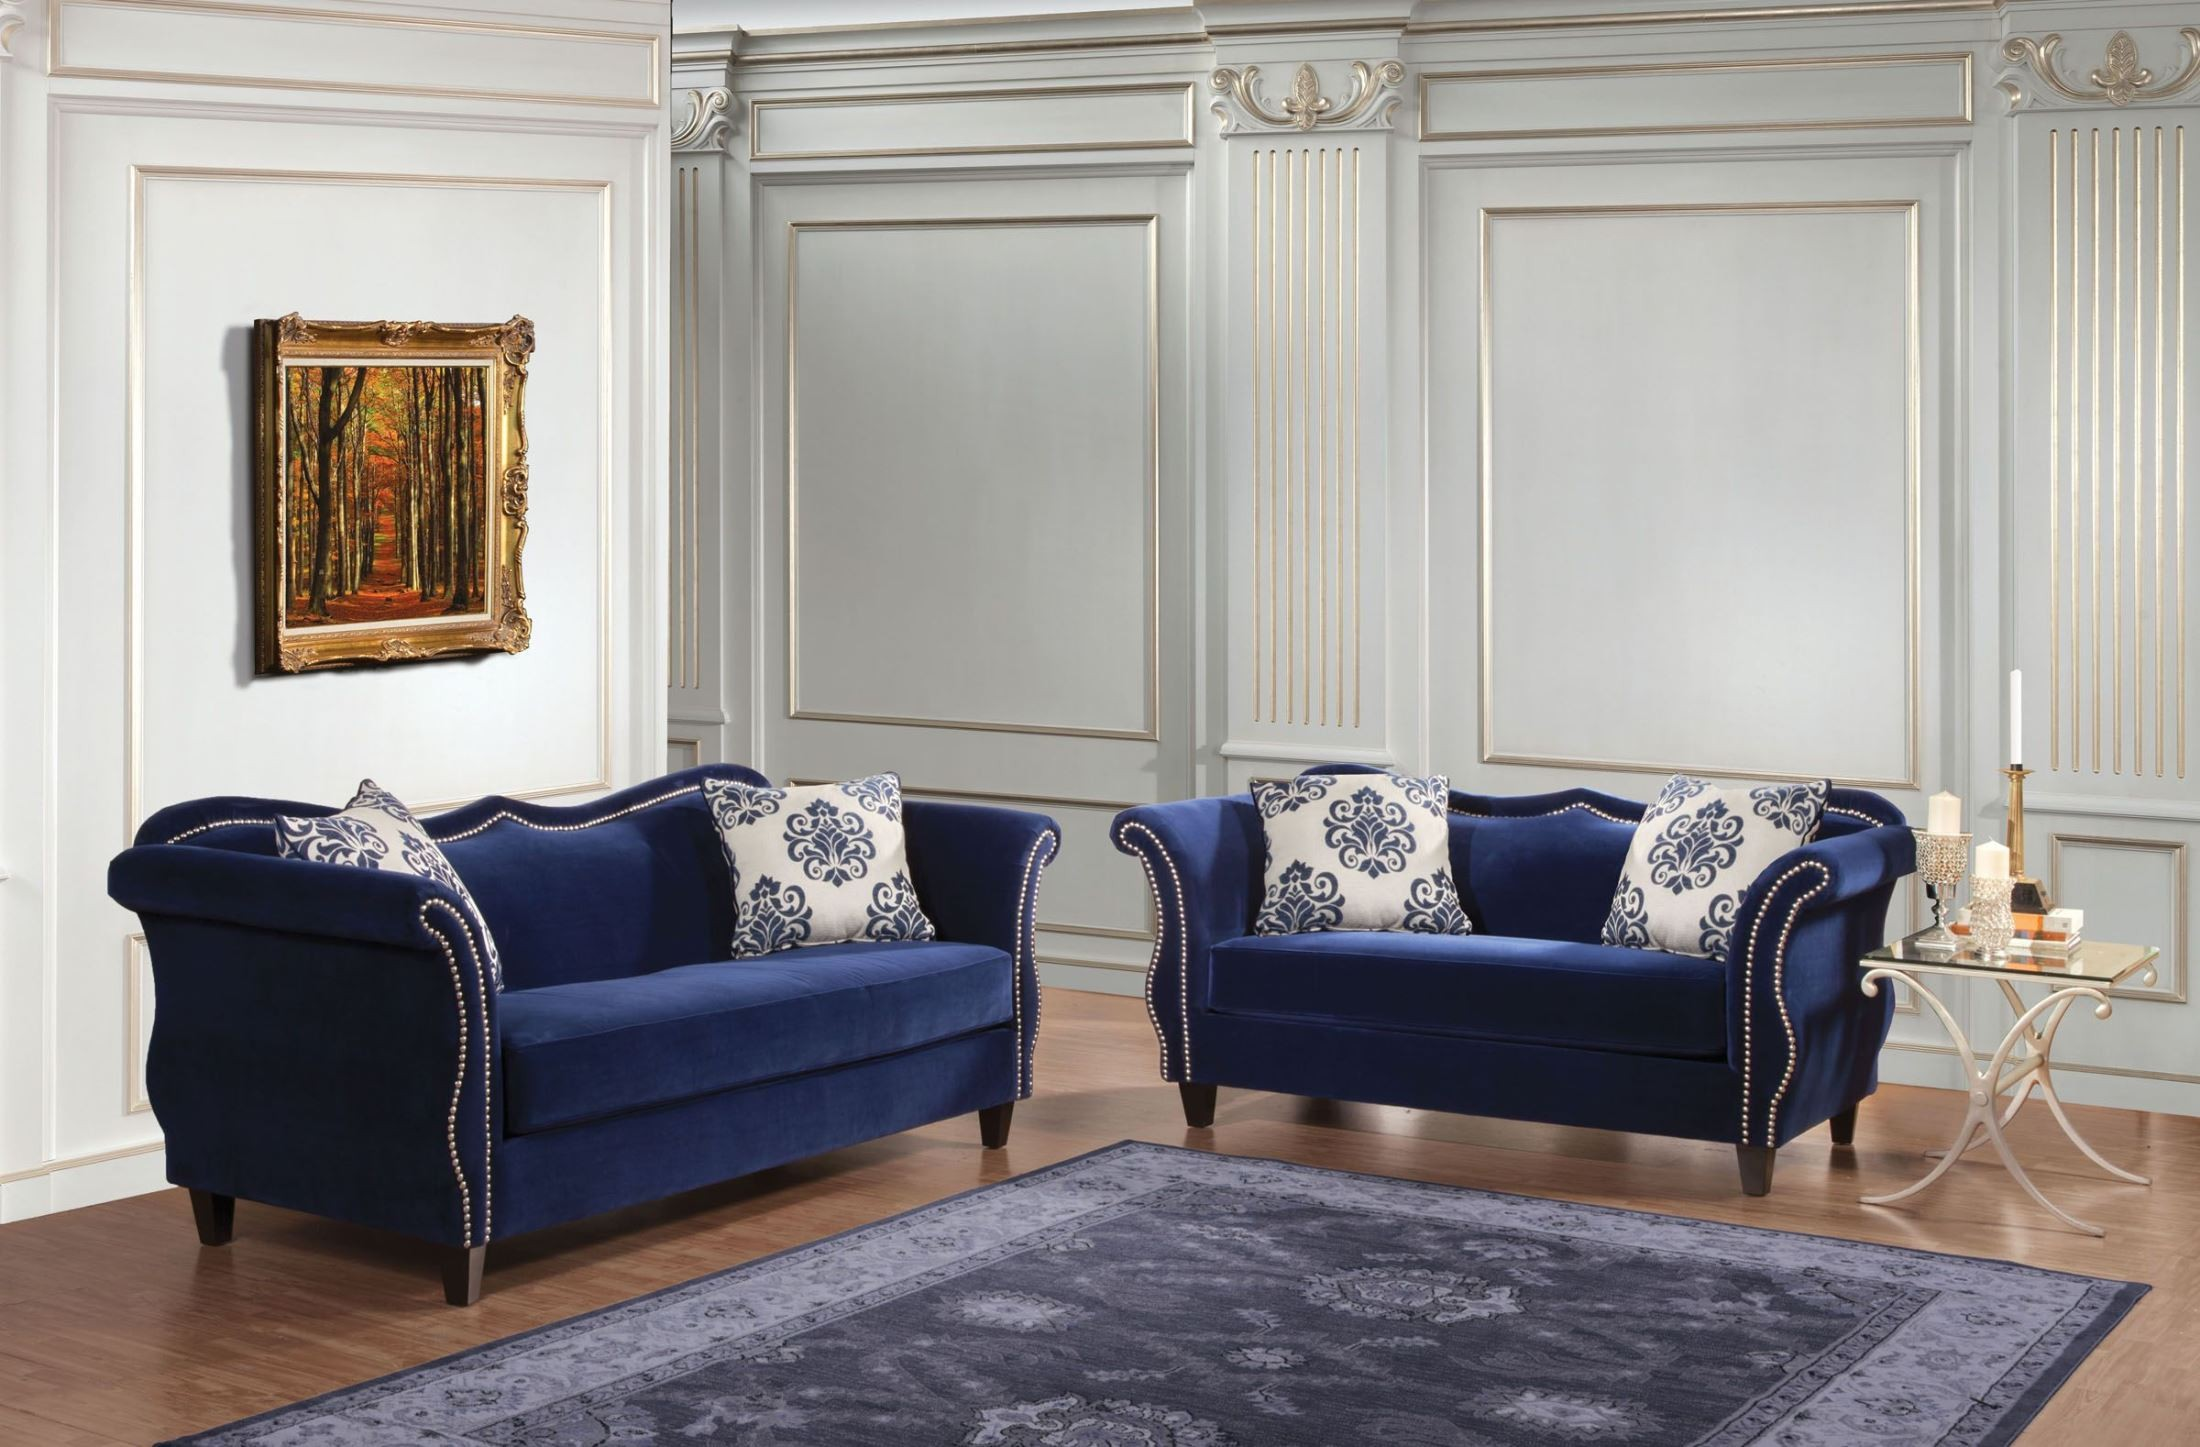 Zaffiro royal blue living room set sm2231 sf furniture of america - Blue living room chairs ...